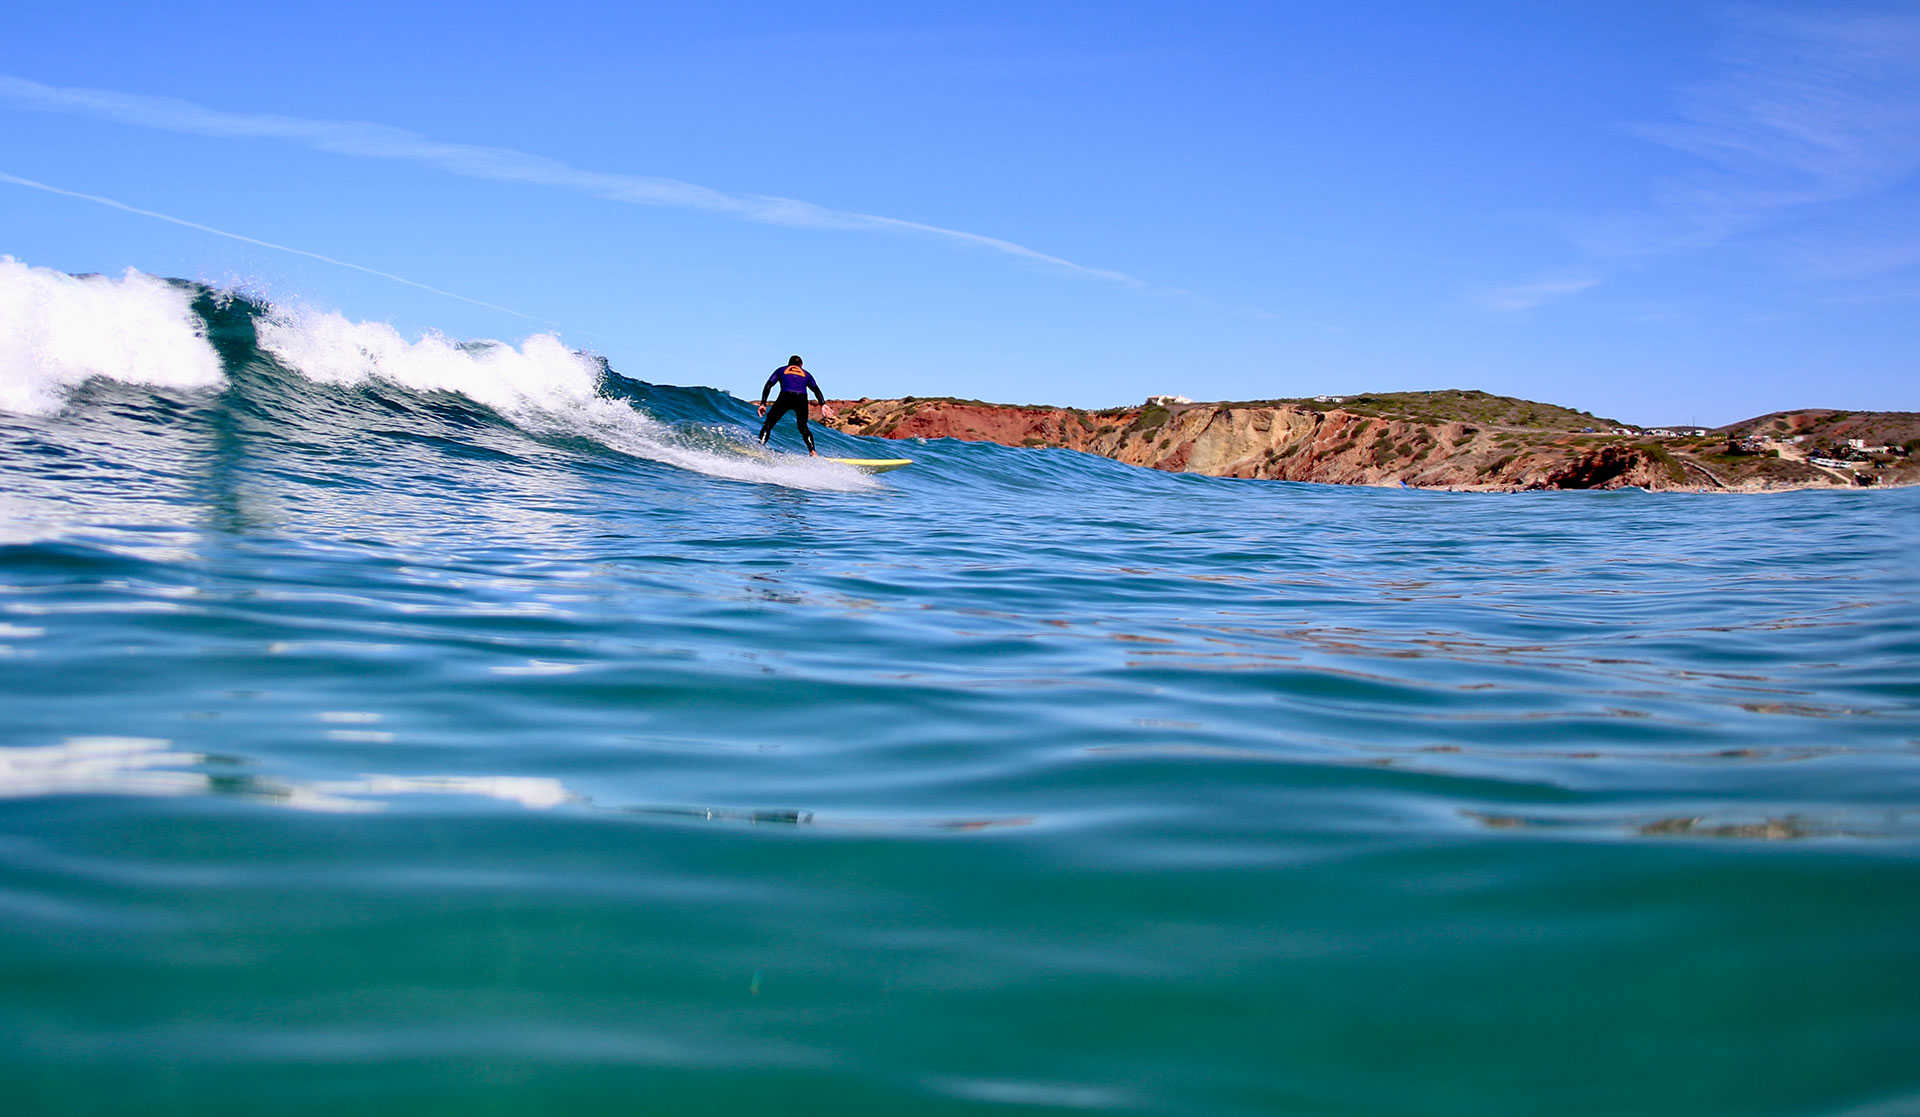 Algarve surfcamp Portugal. You can see our surf school in amado beach at the far right end